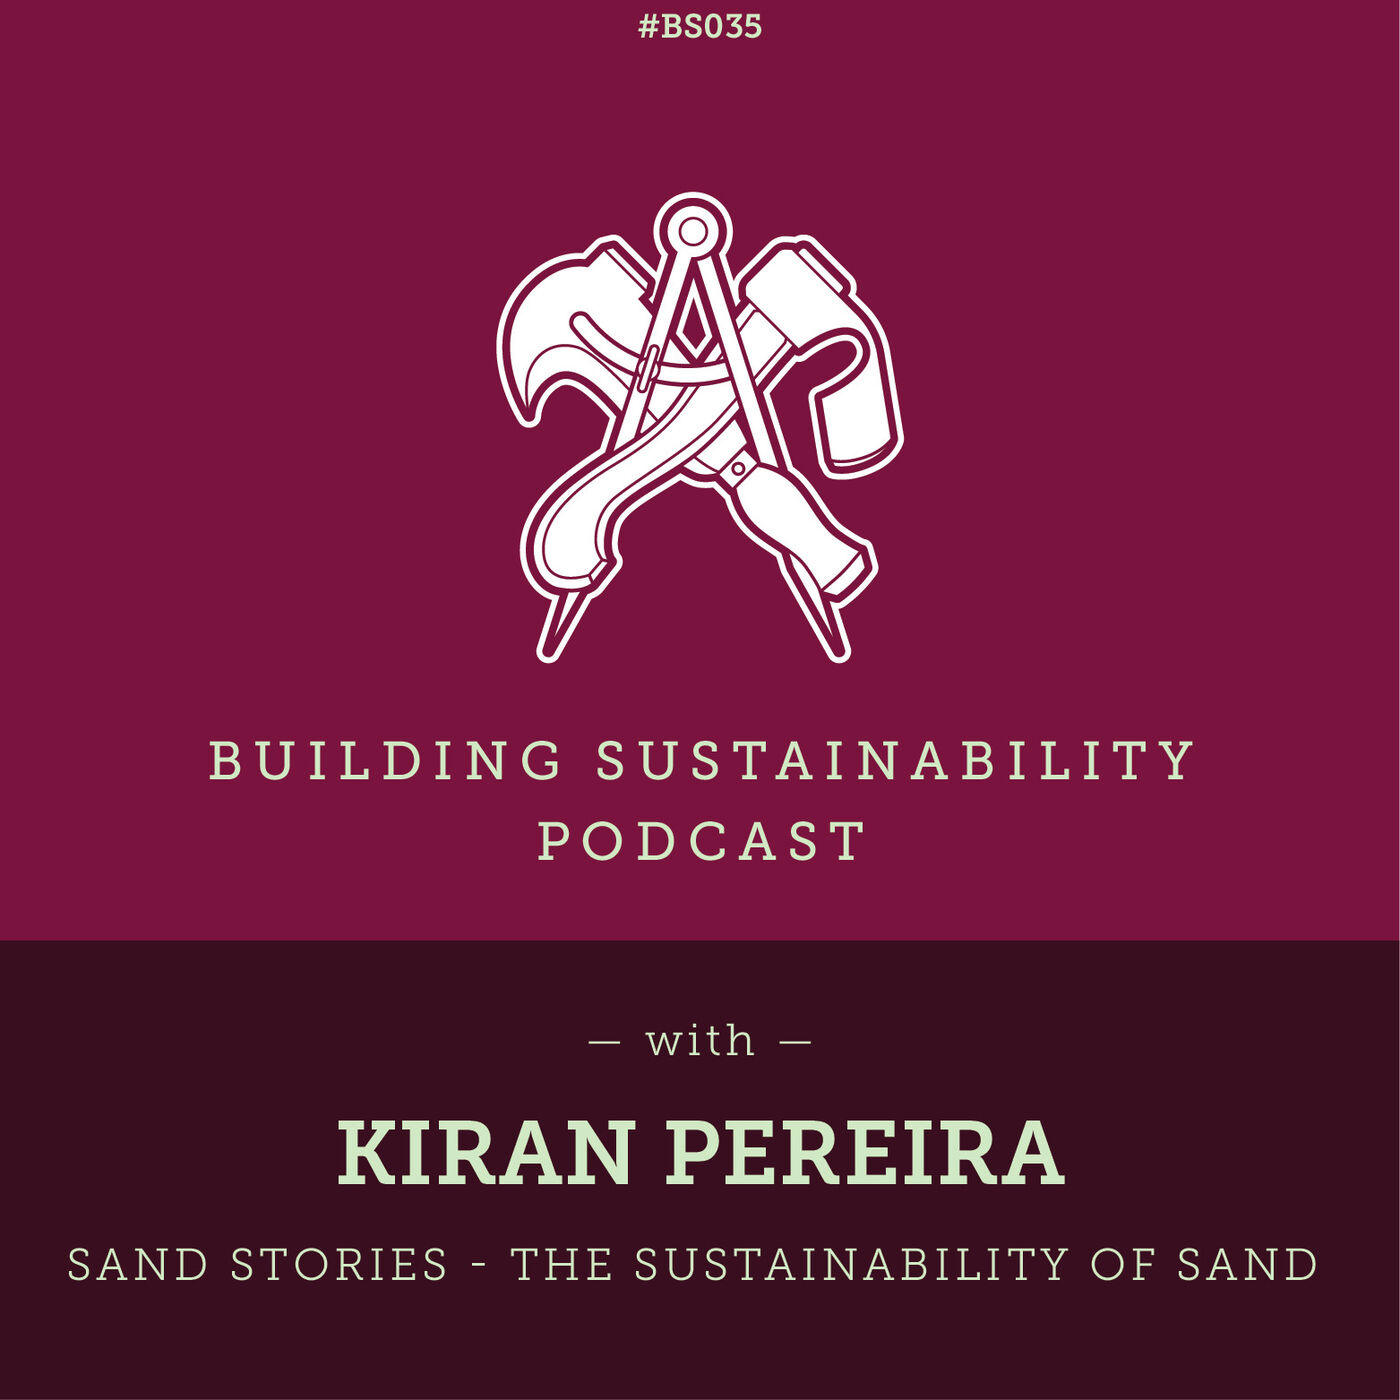 Sand Stories - The sustainability of sand - Kiran Pereira